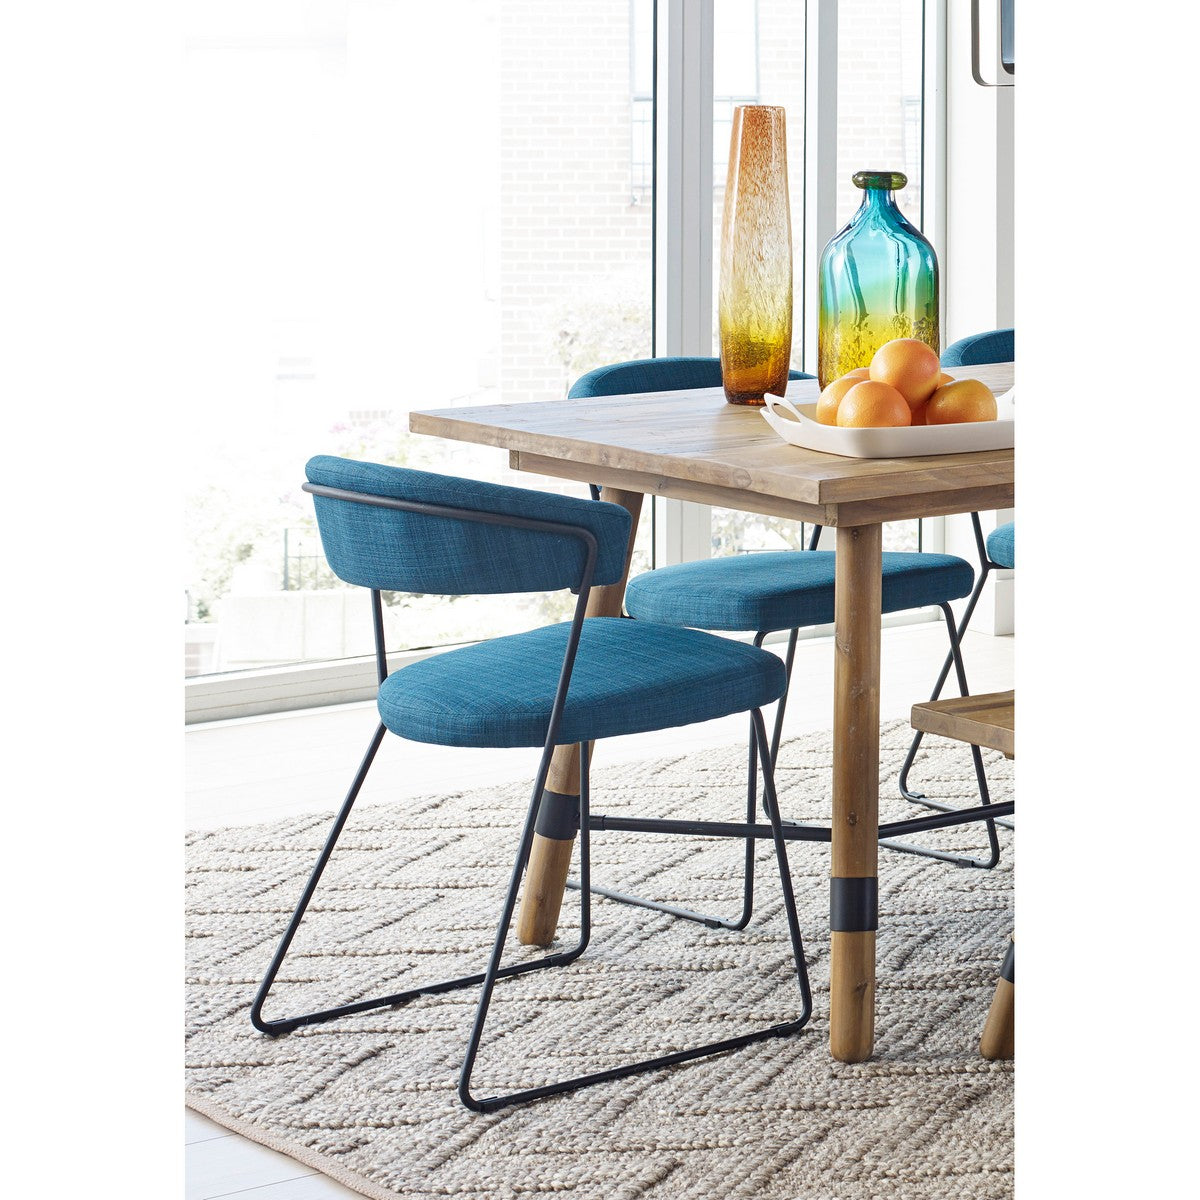 Moe's Home Collection Adria Dining Chair Blue-Set of Two - HK-1010-50 - Moe's Home Collection - Dining Chairs - Minimal And Modern - 1